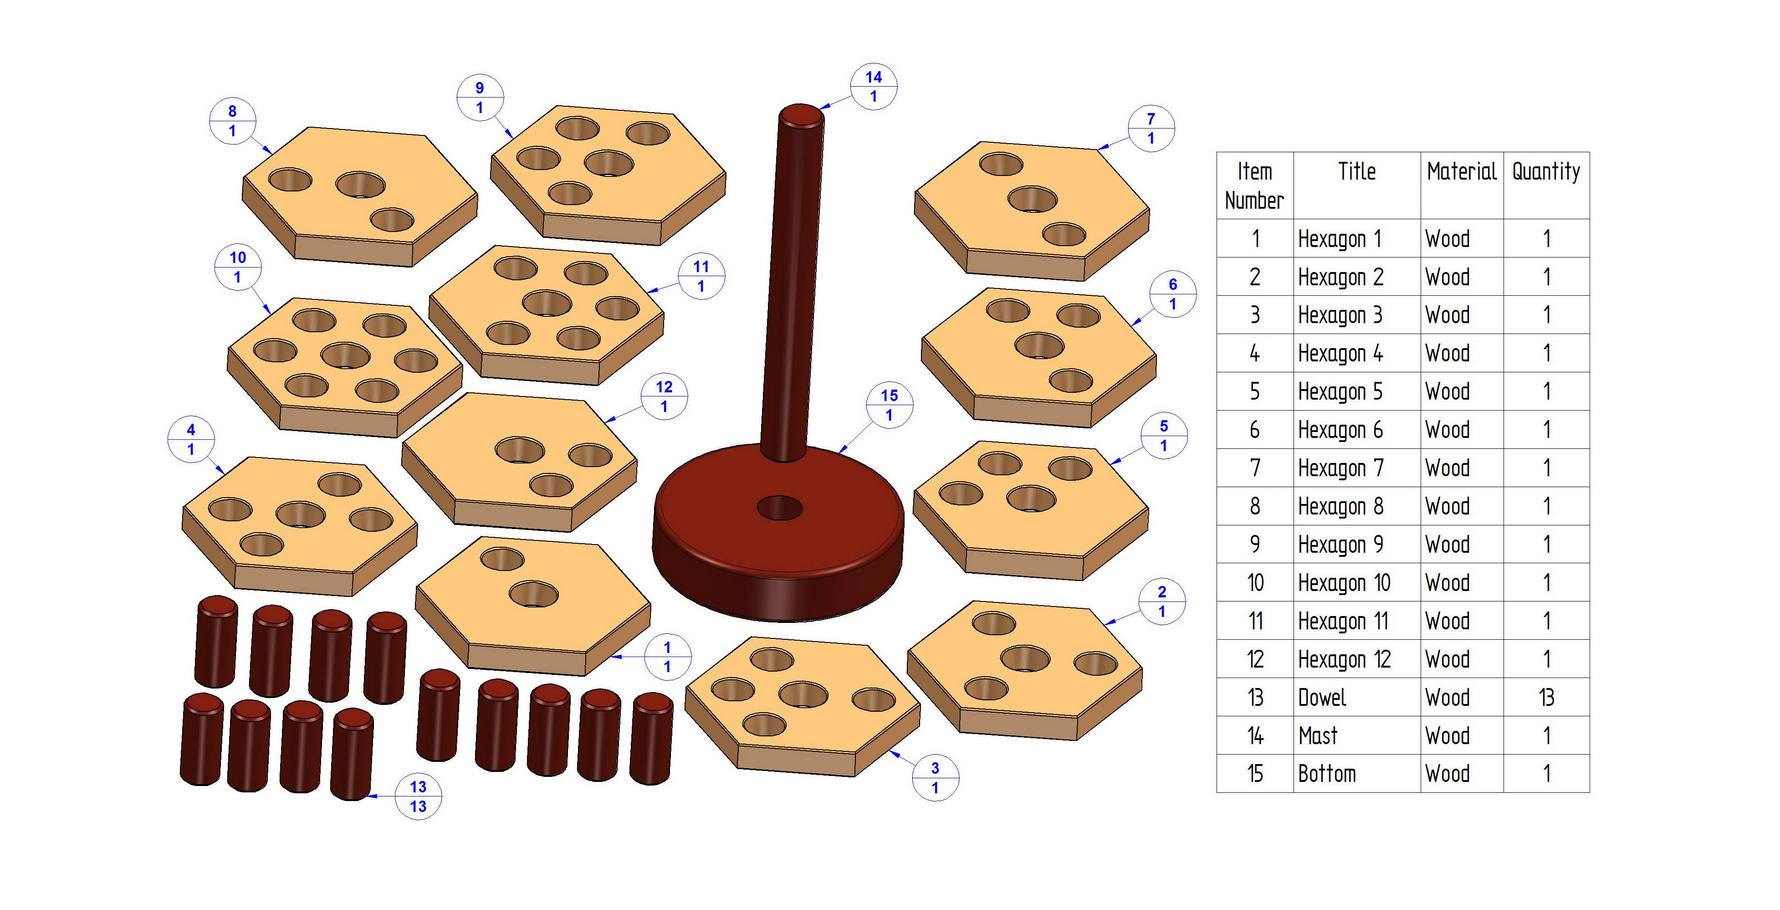 3d Wooden Puzzles Plans Wooden Stacker Puzzle Plan 3